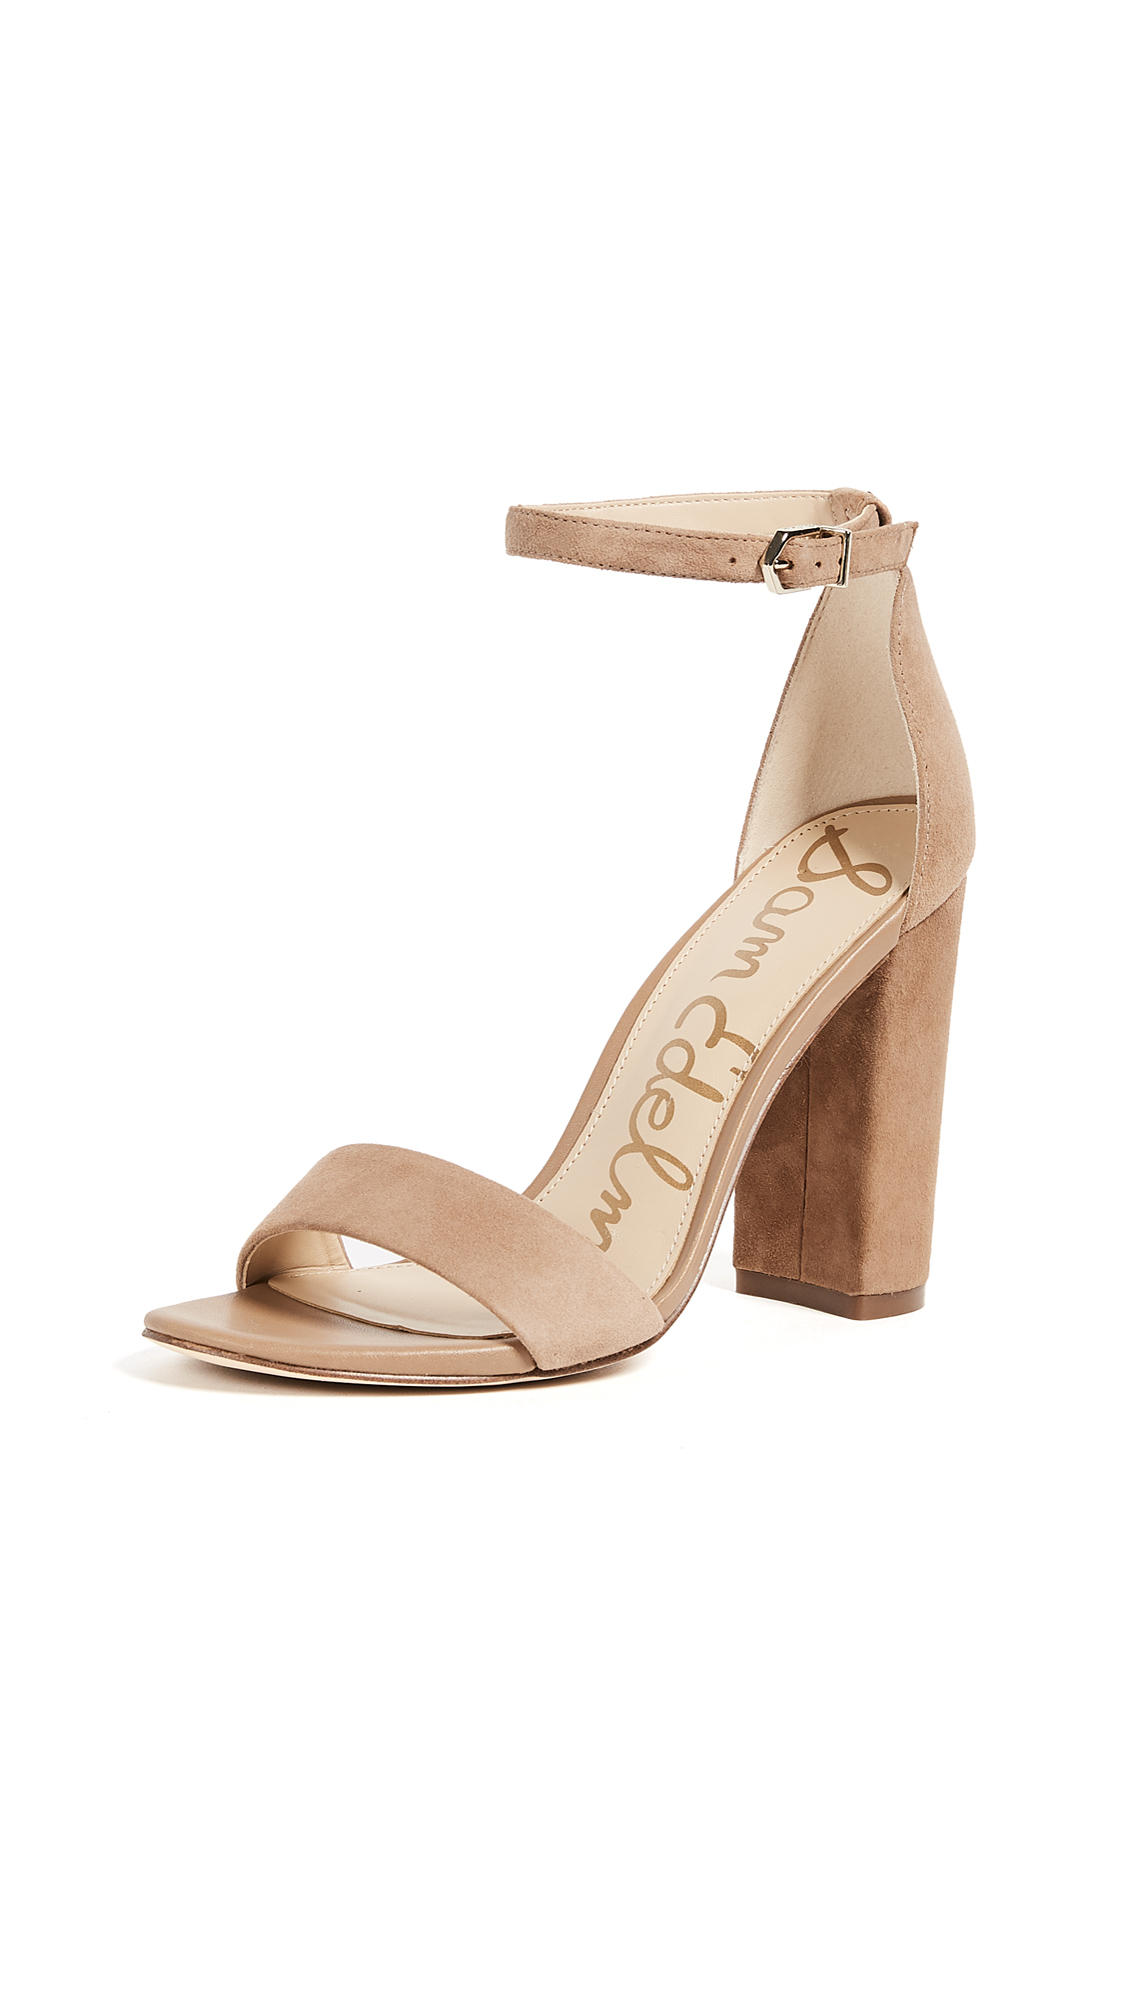 Sam Edelman Yaro Suede Sandals - Golden Caramel